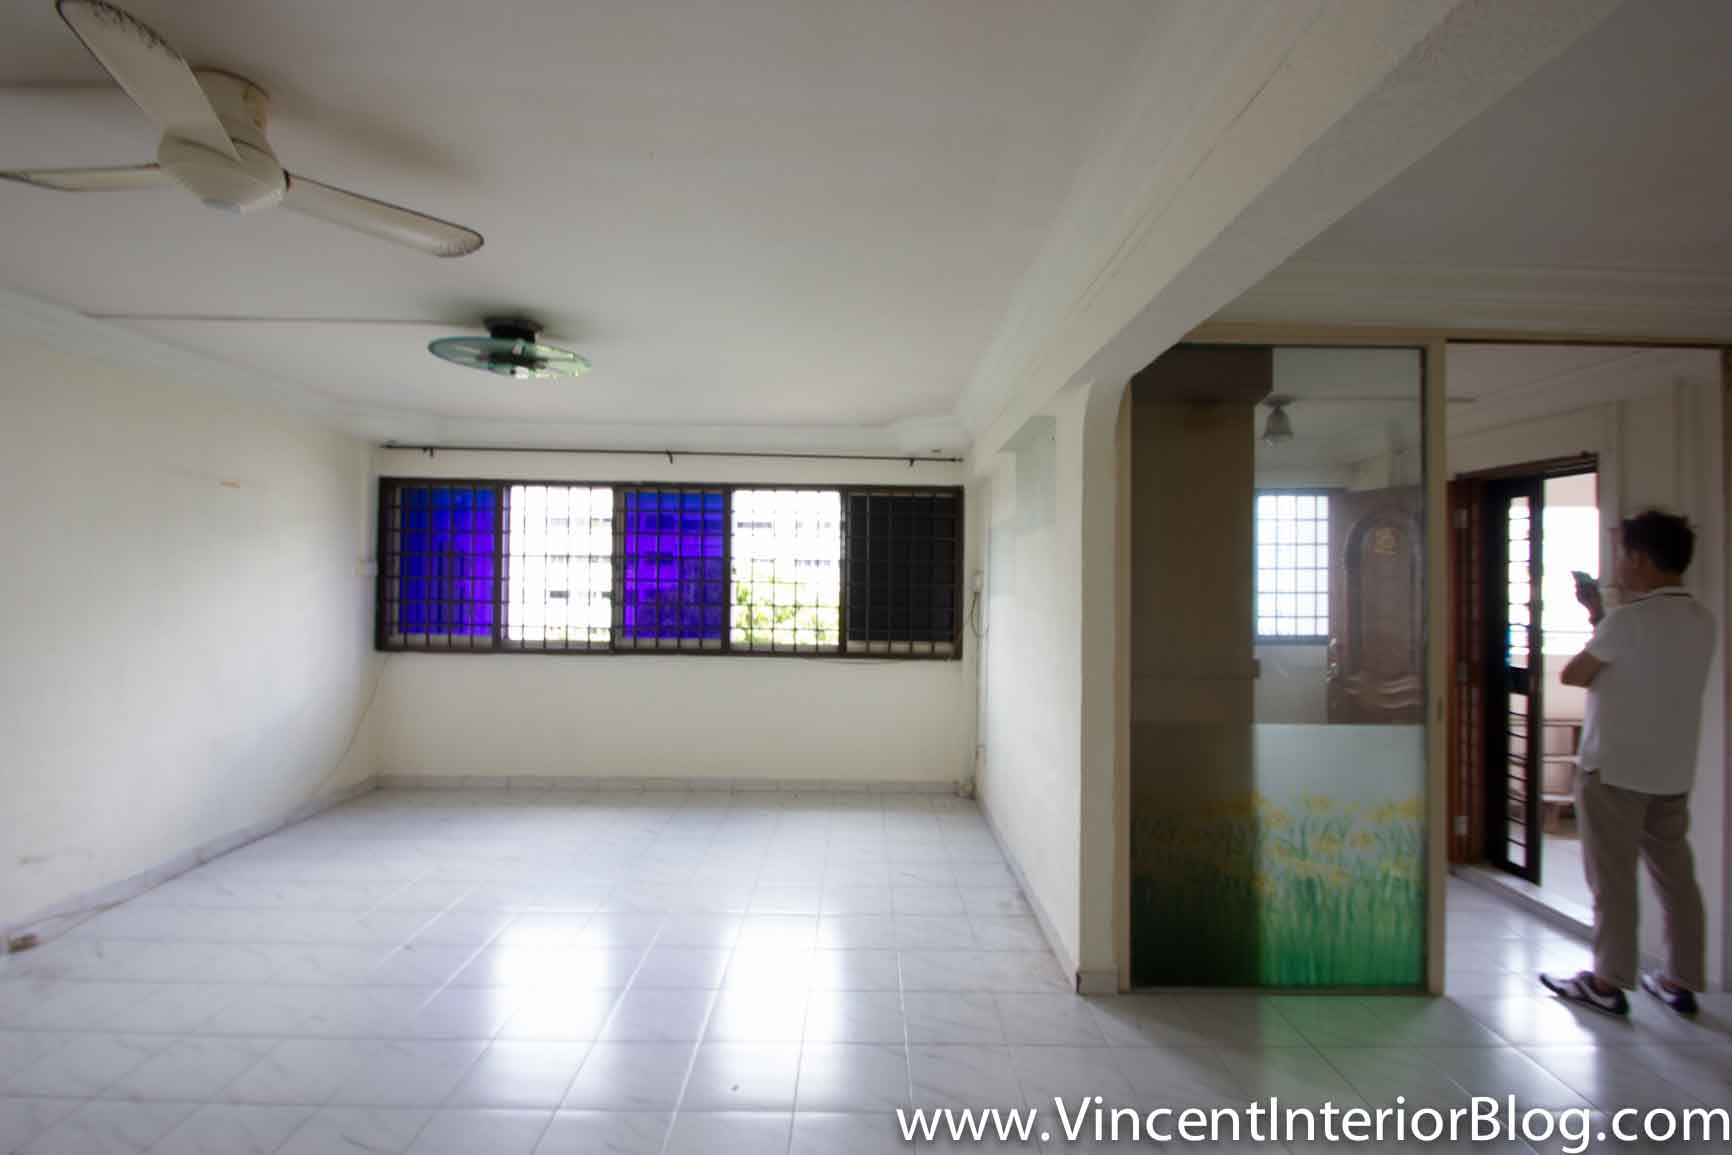 5 room hdb yishun living room 9 vincent interior blog for Room 9 design